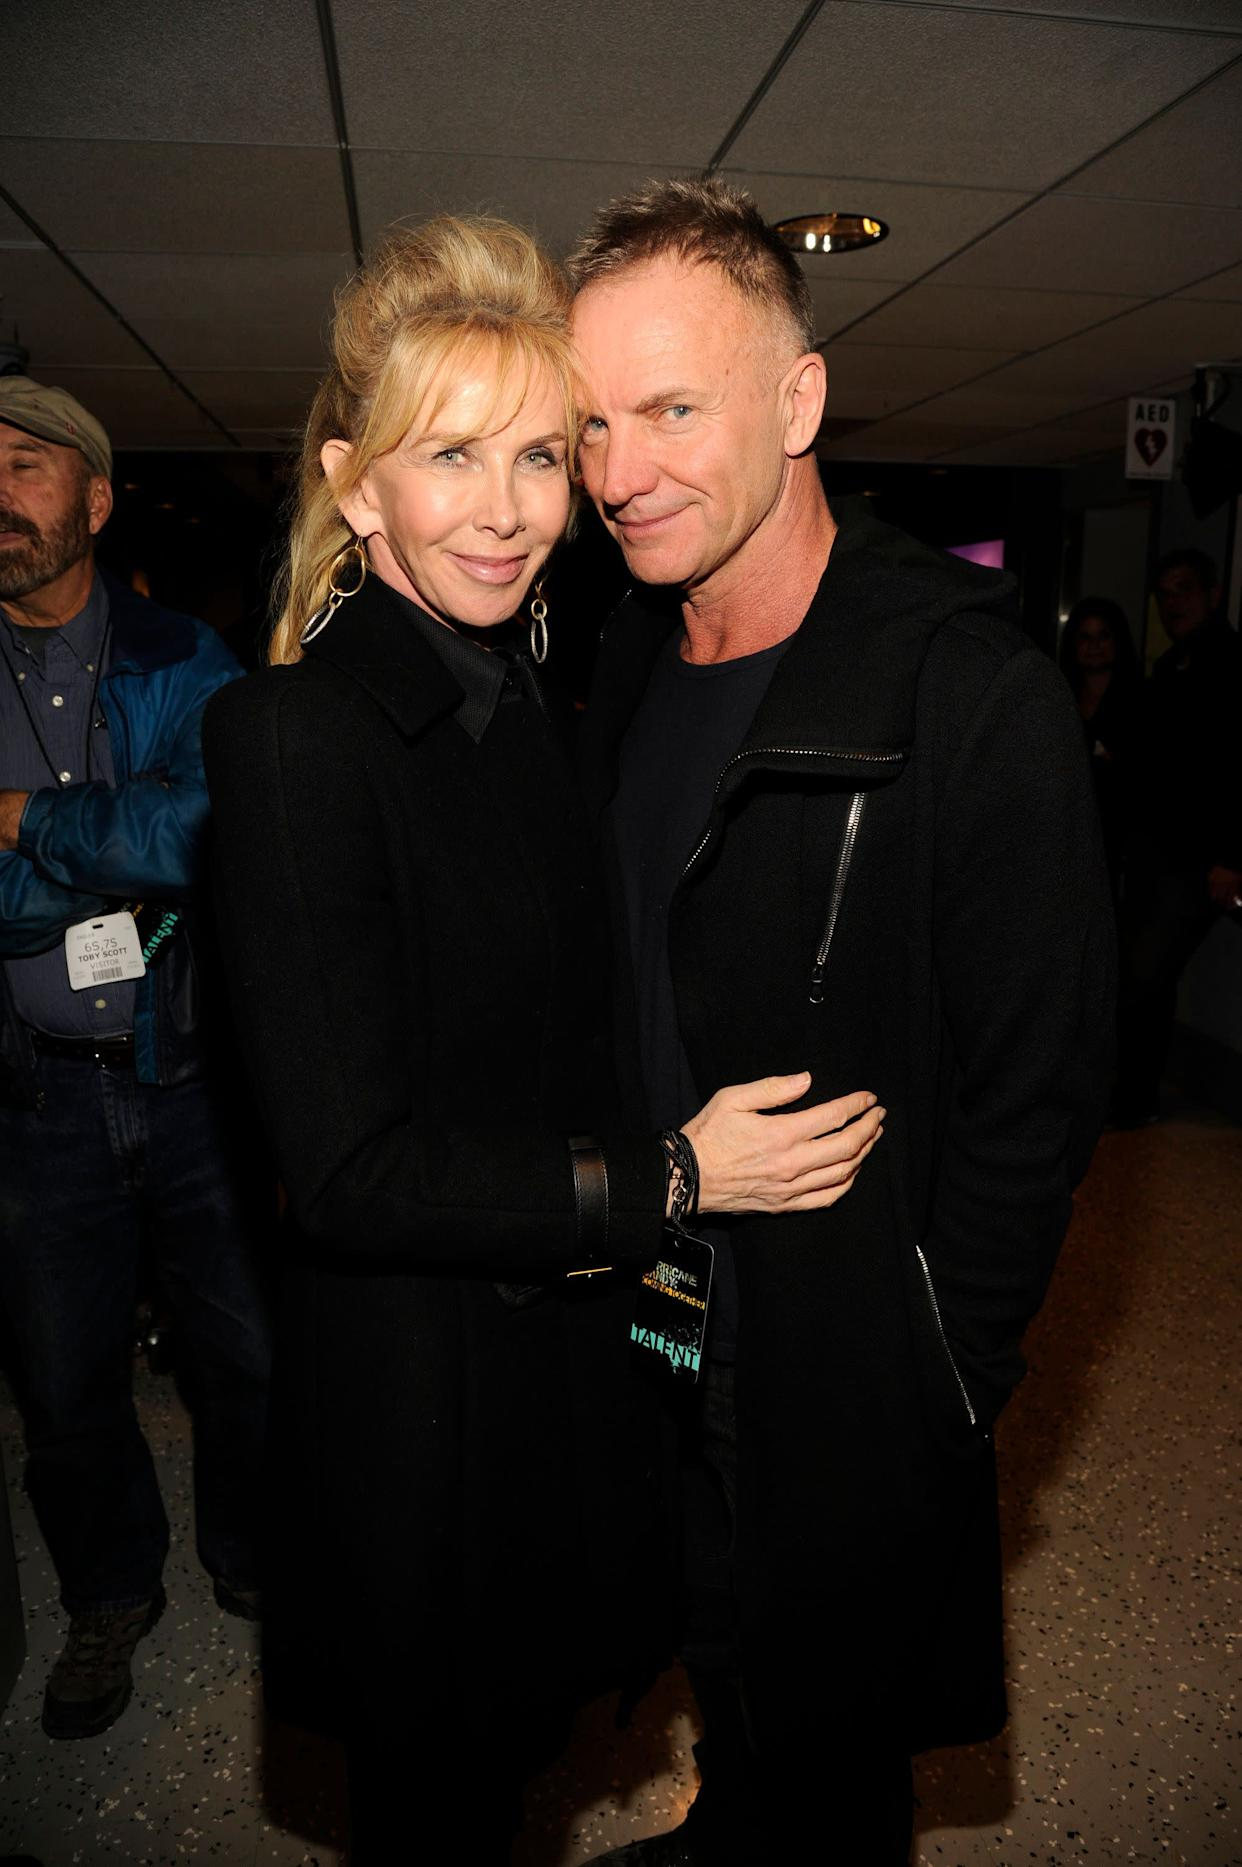 """Sting loves to romance his wife Trudie Syler. """"There's a playfulness we have; I like the theater of sex,"""" <a href=""""http://www.harpersbazaar.com/fashion/fashion-articles/sting-trudie-styler-interview-0211?click=main_sr"""" rel=""""nofollow noopener"""" target=""""_blank"""" data-ylk=""""slk:he told Harper's Bazaar."""" class=""""link rapid-noclick-resp"""">he told Harper's Bazaar.</a> """"I like to look good. I like her to dress up. I like to dress her up."""""""